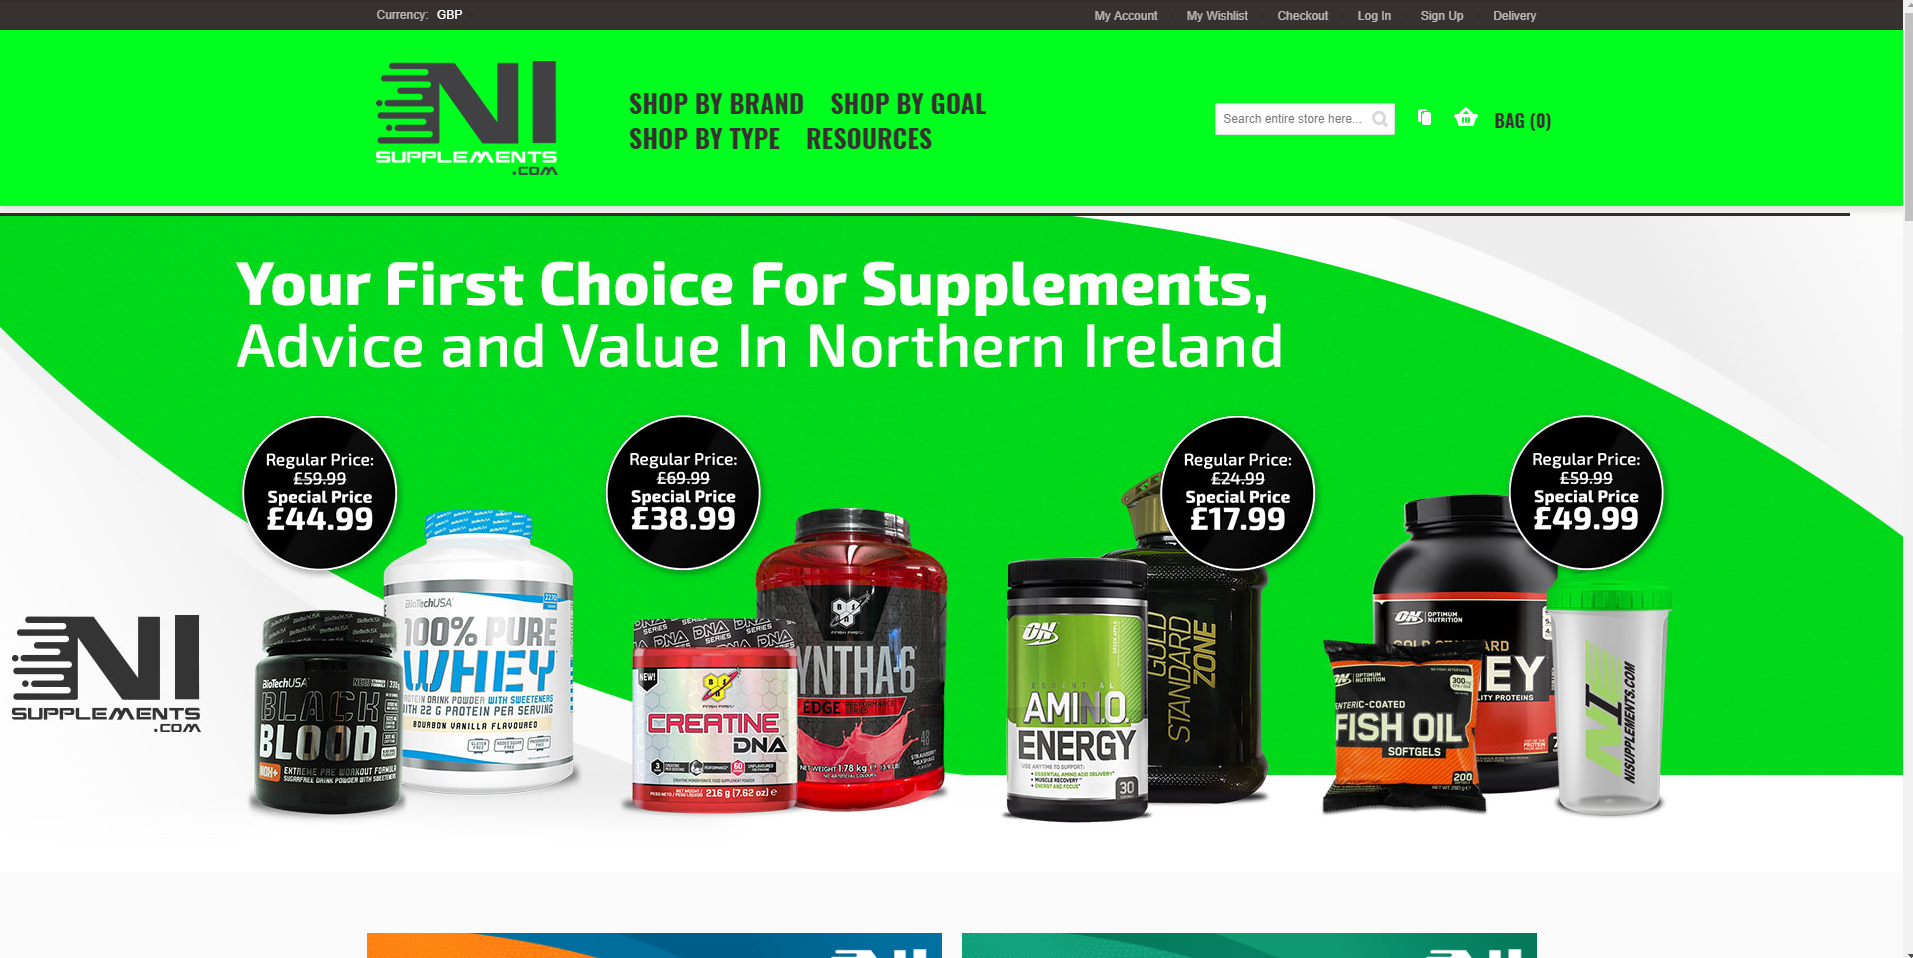 NI Supplements